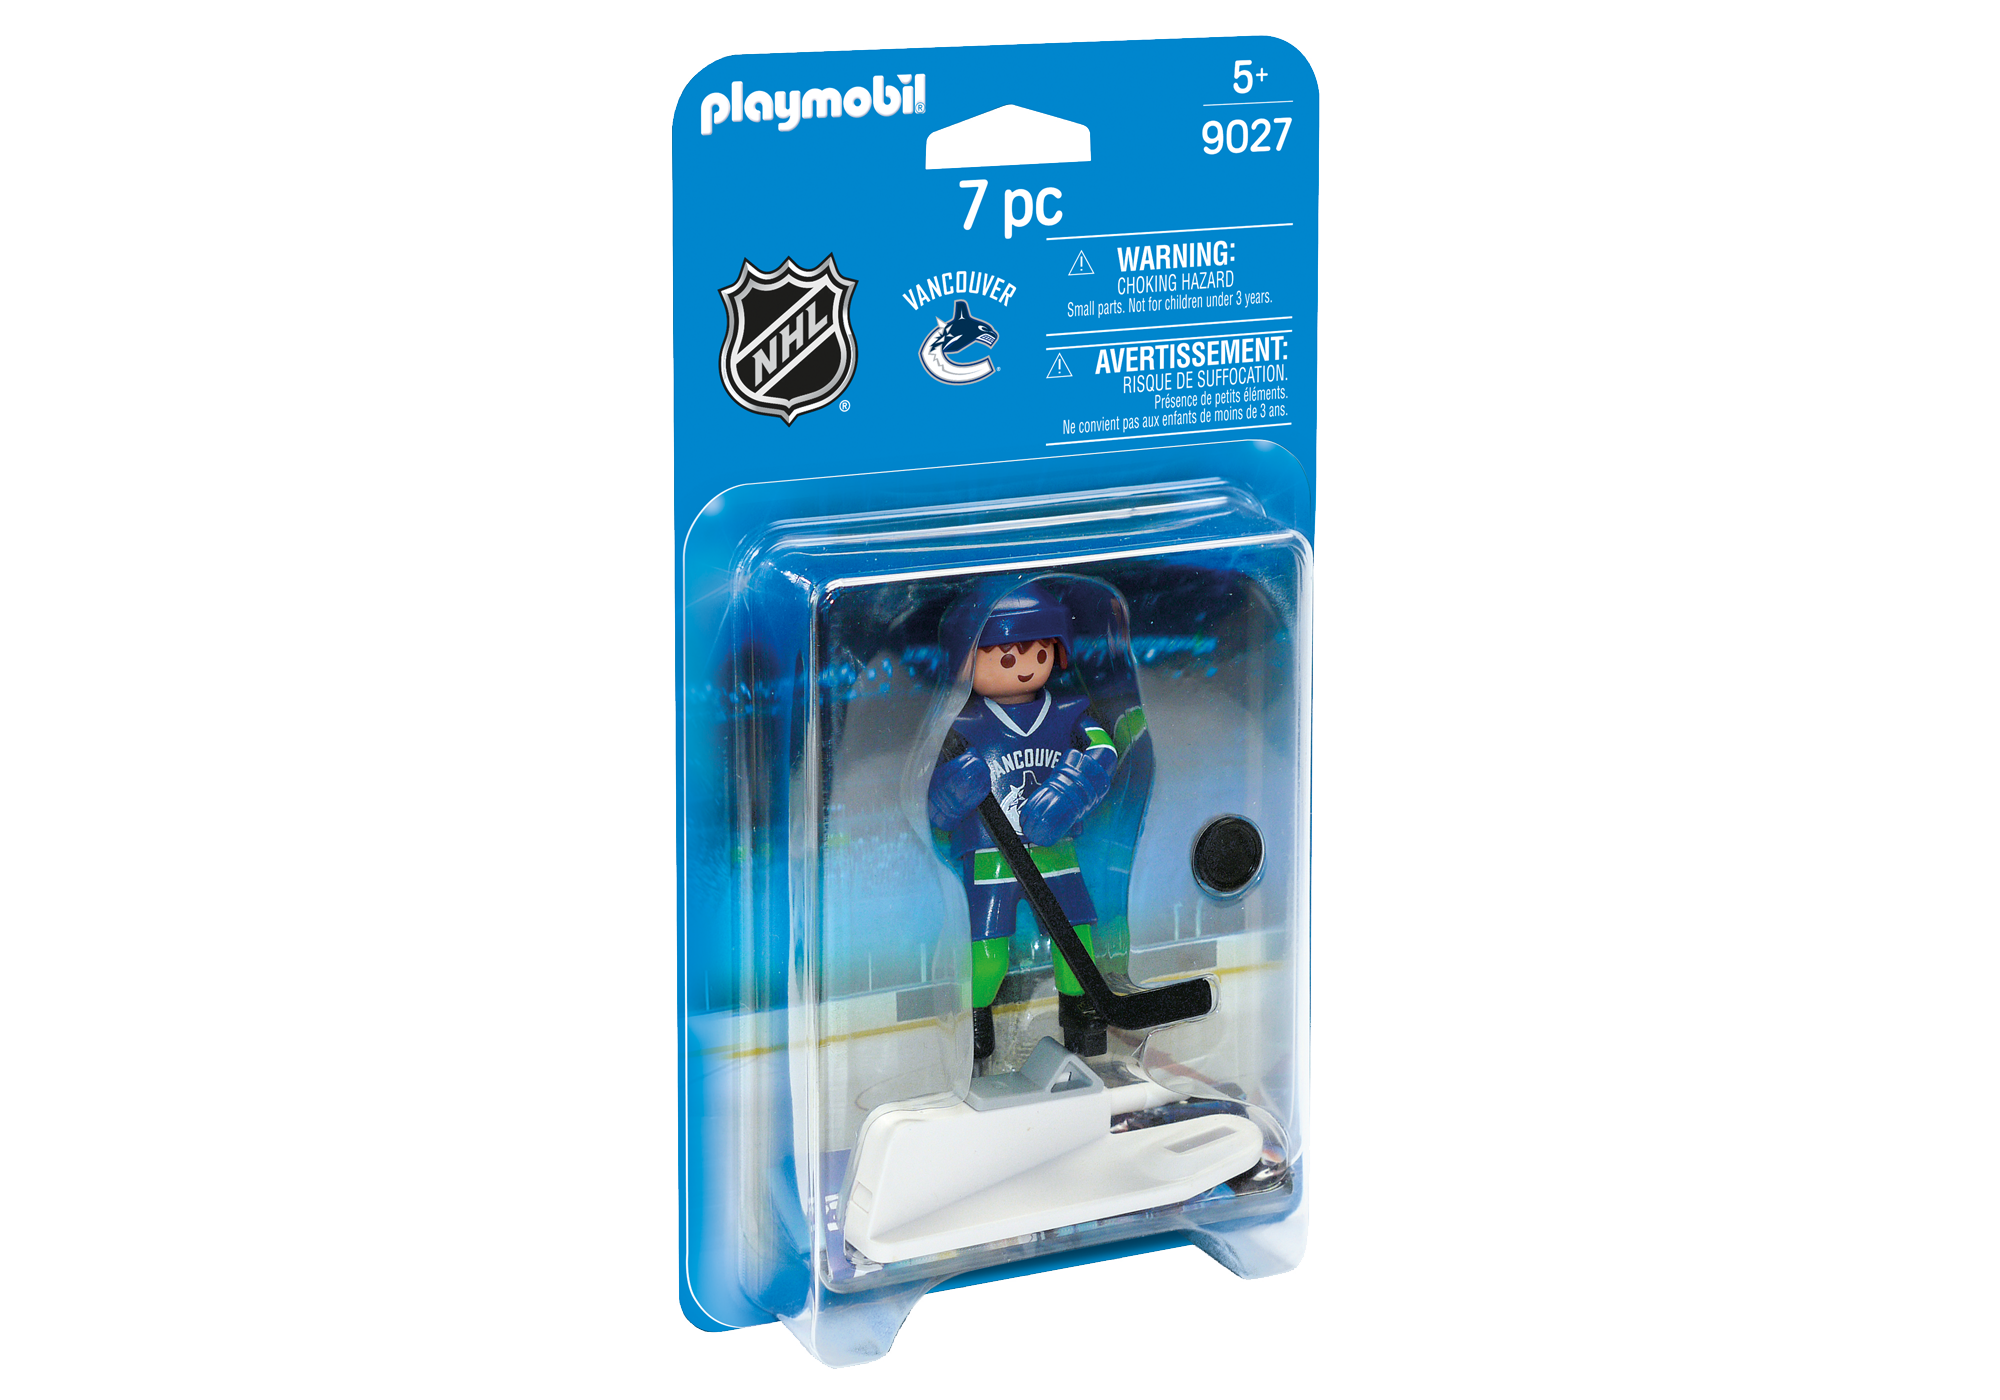 http://media.playmobil.com/i/playmobil/9027_product_box_front/NHL™ Vancouver Canucks™ Player